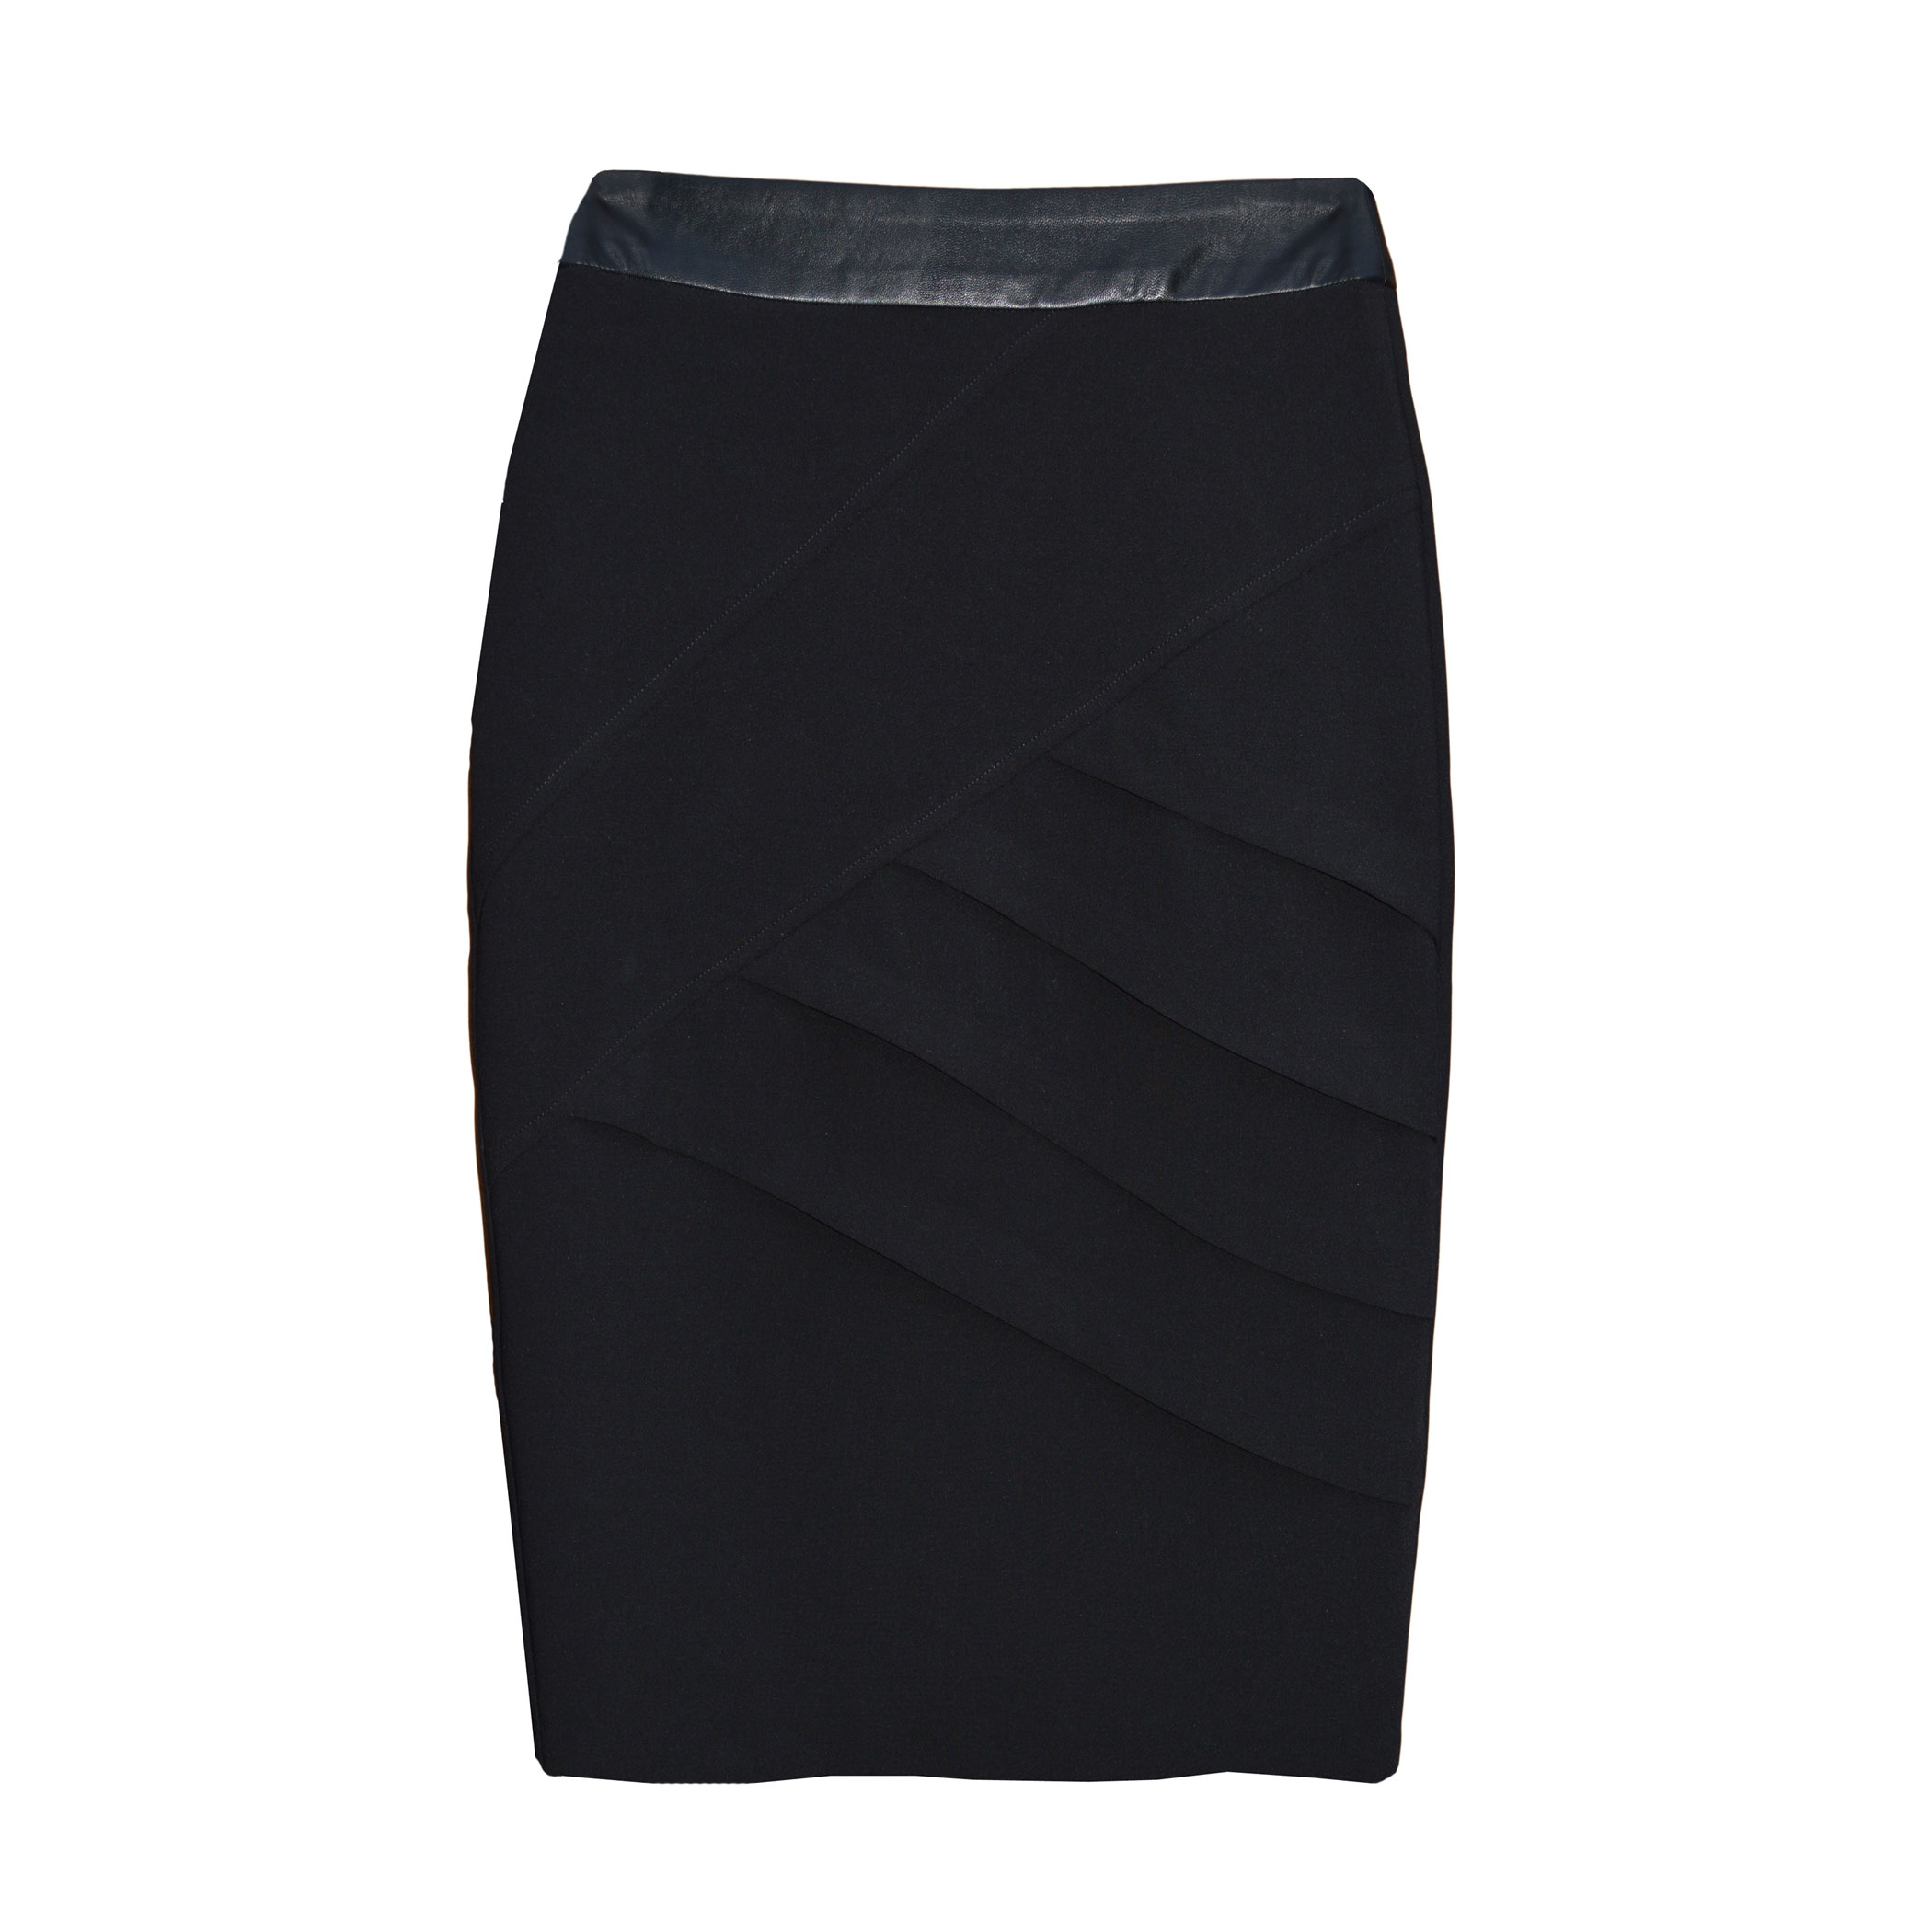 More Details THE ROW Rabina Scuba Pencil Midi Skirt, Black Details THE ROW